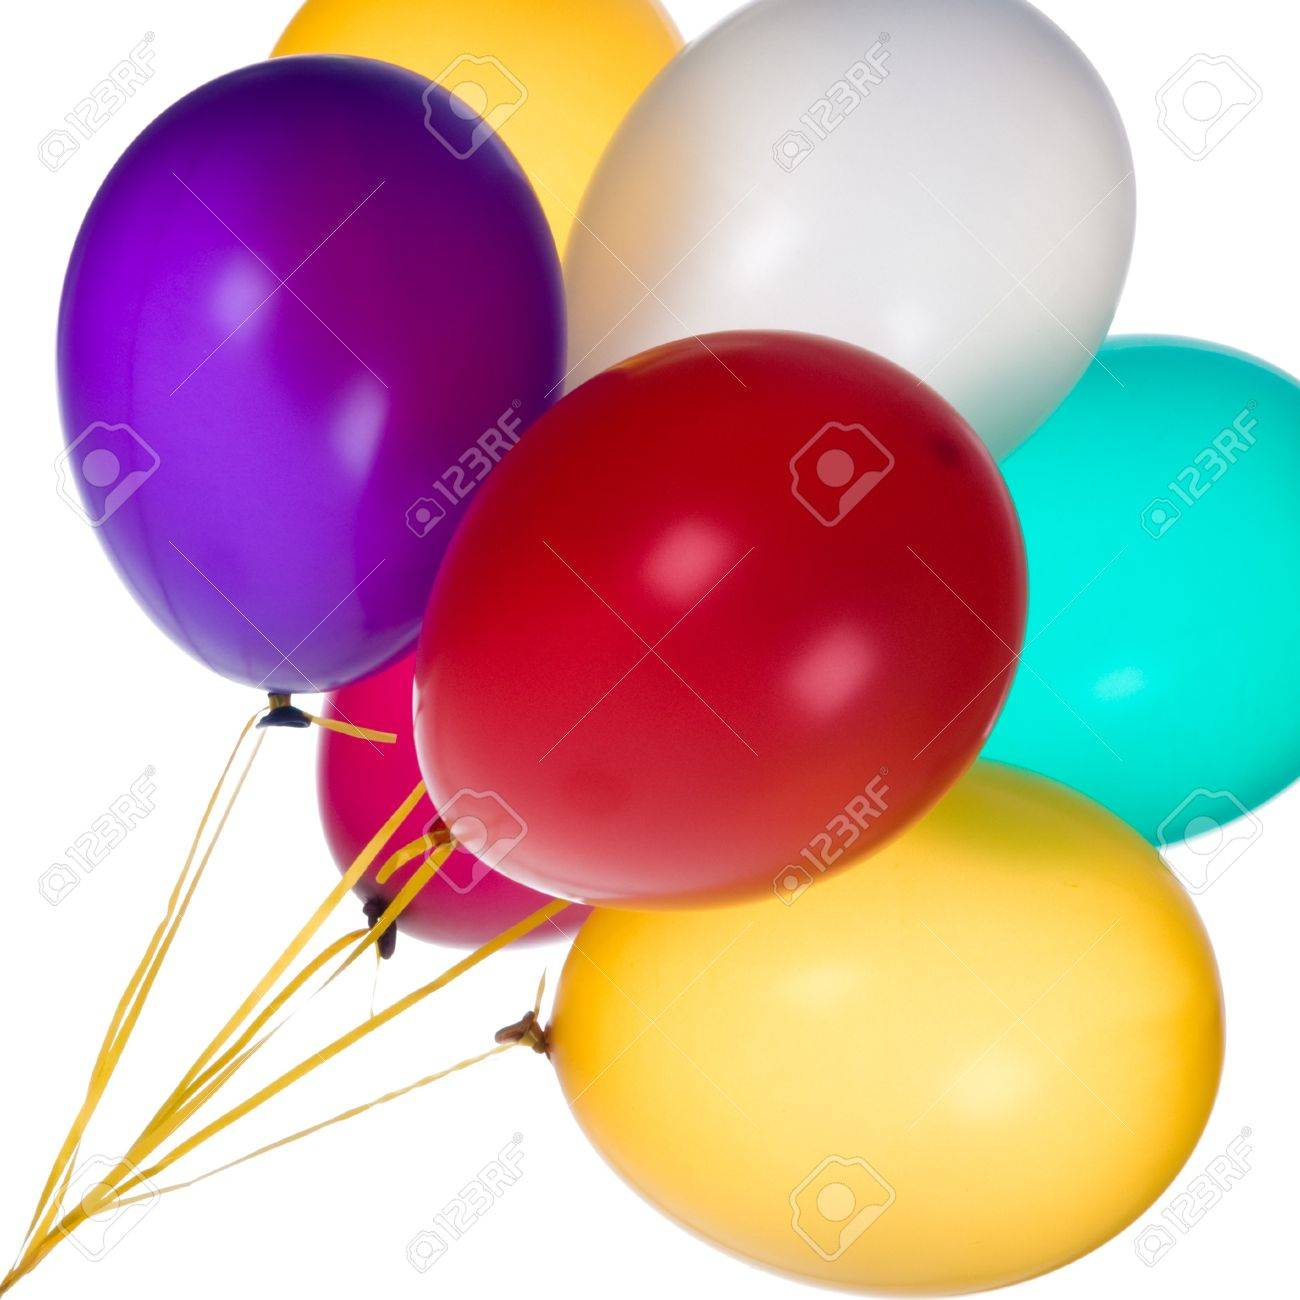 inflated balloon images u0026 stock pictures royalty free inflated